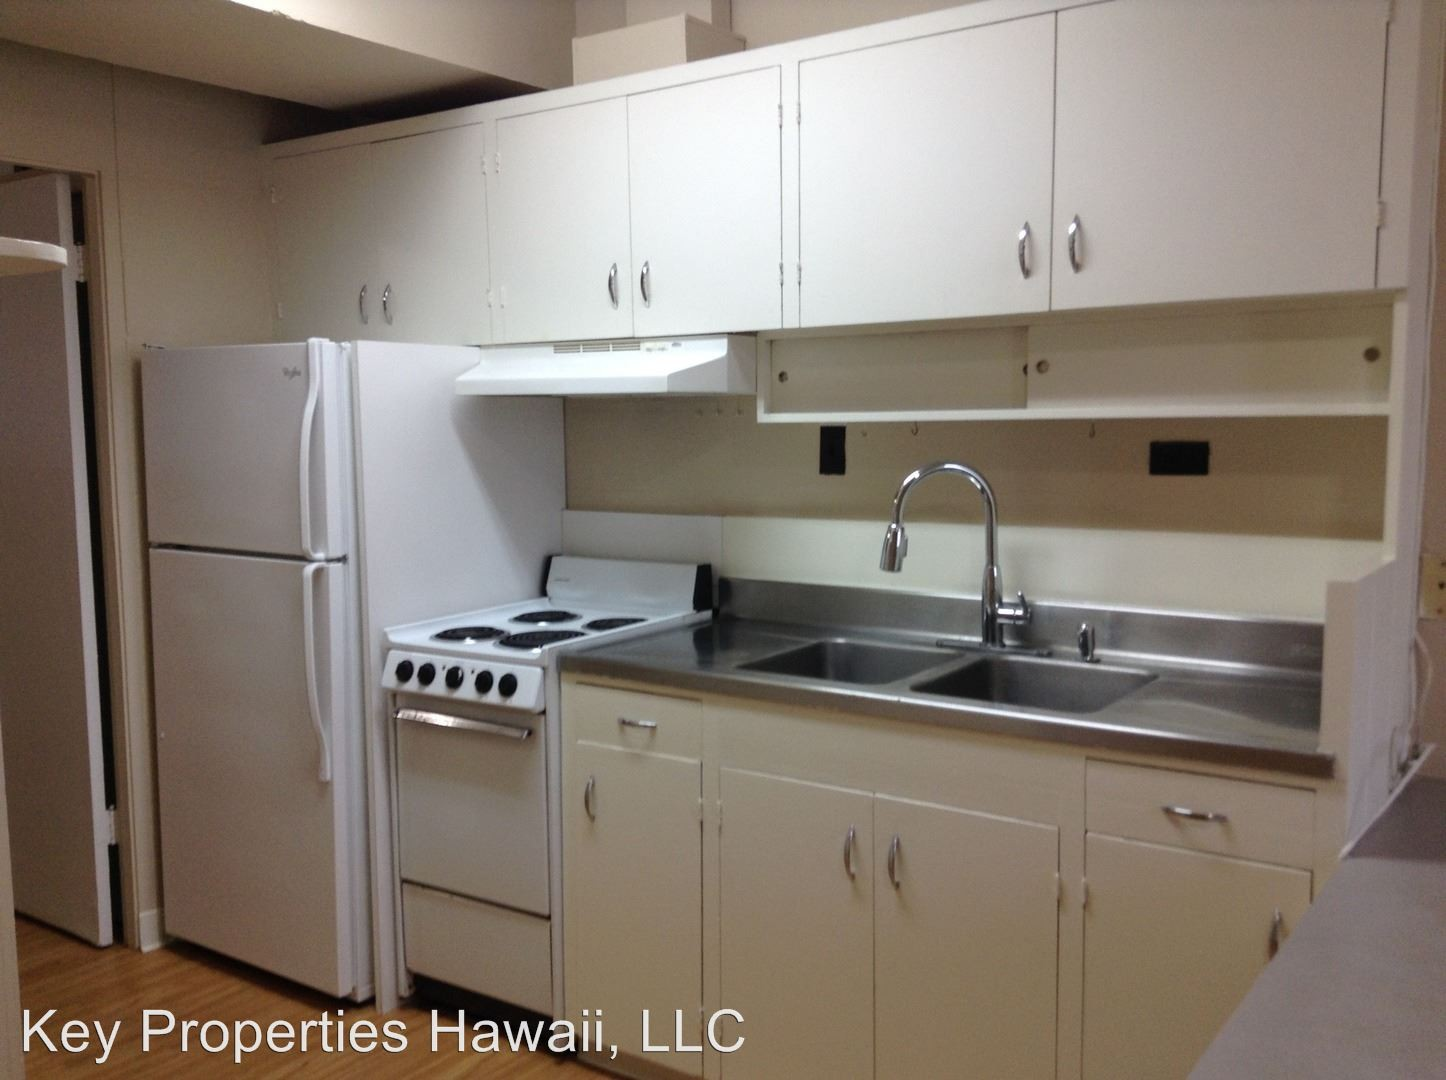 927 Wiliwili St Honolulu Hi 96826 1 Bedroom Apartment For Rent For 1 250 Month Zumper